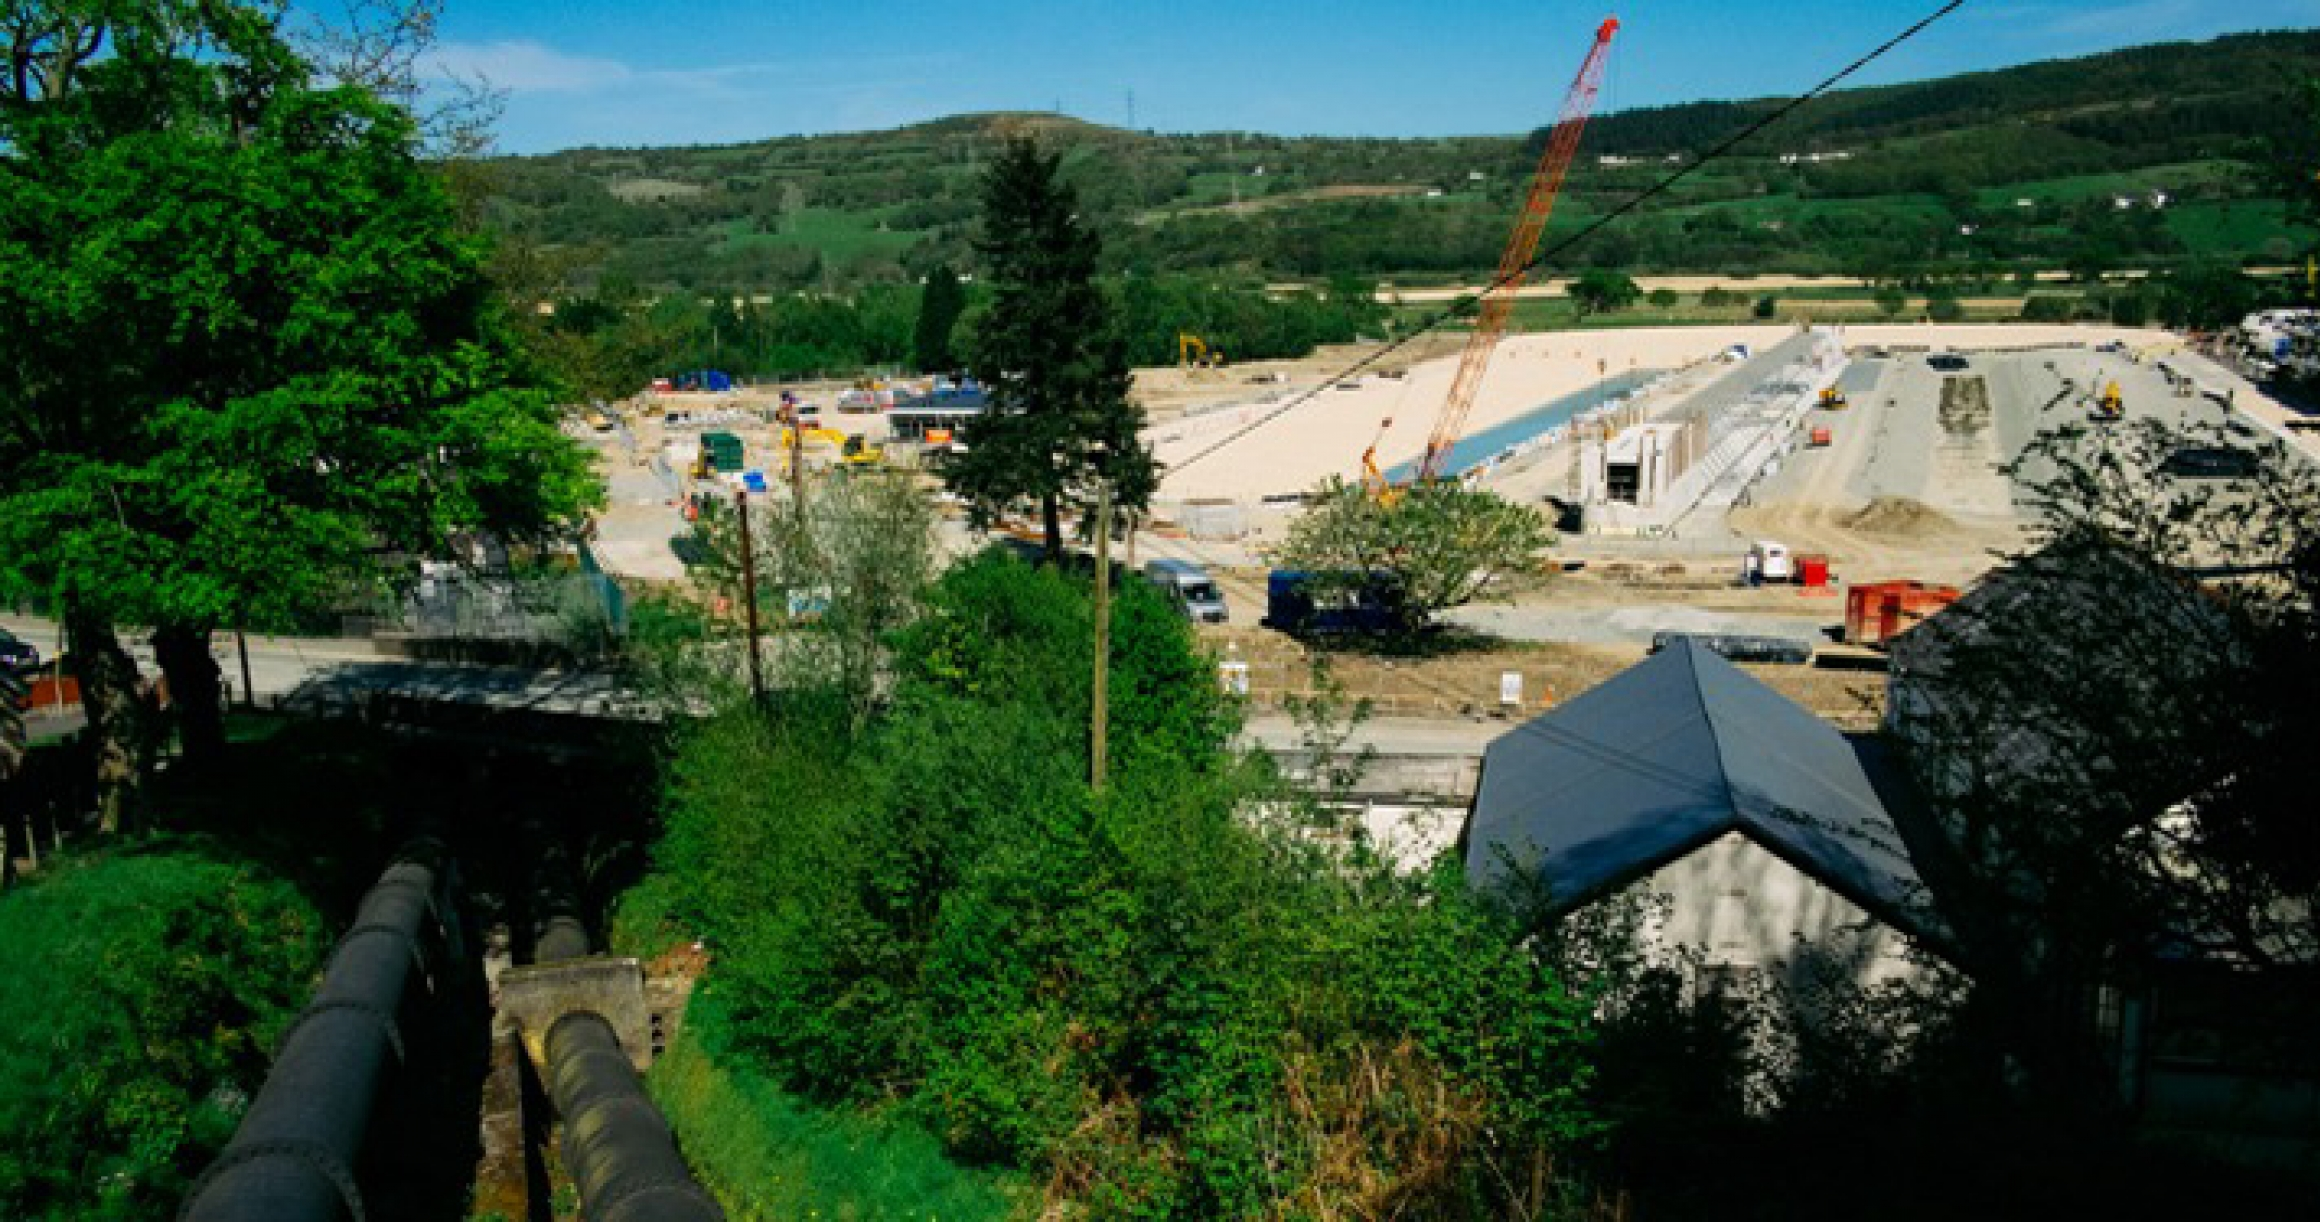 Surf Snowdonia To Open August 1st